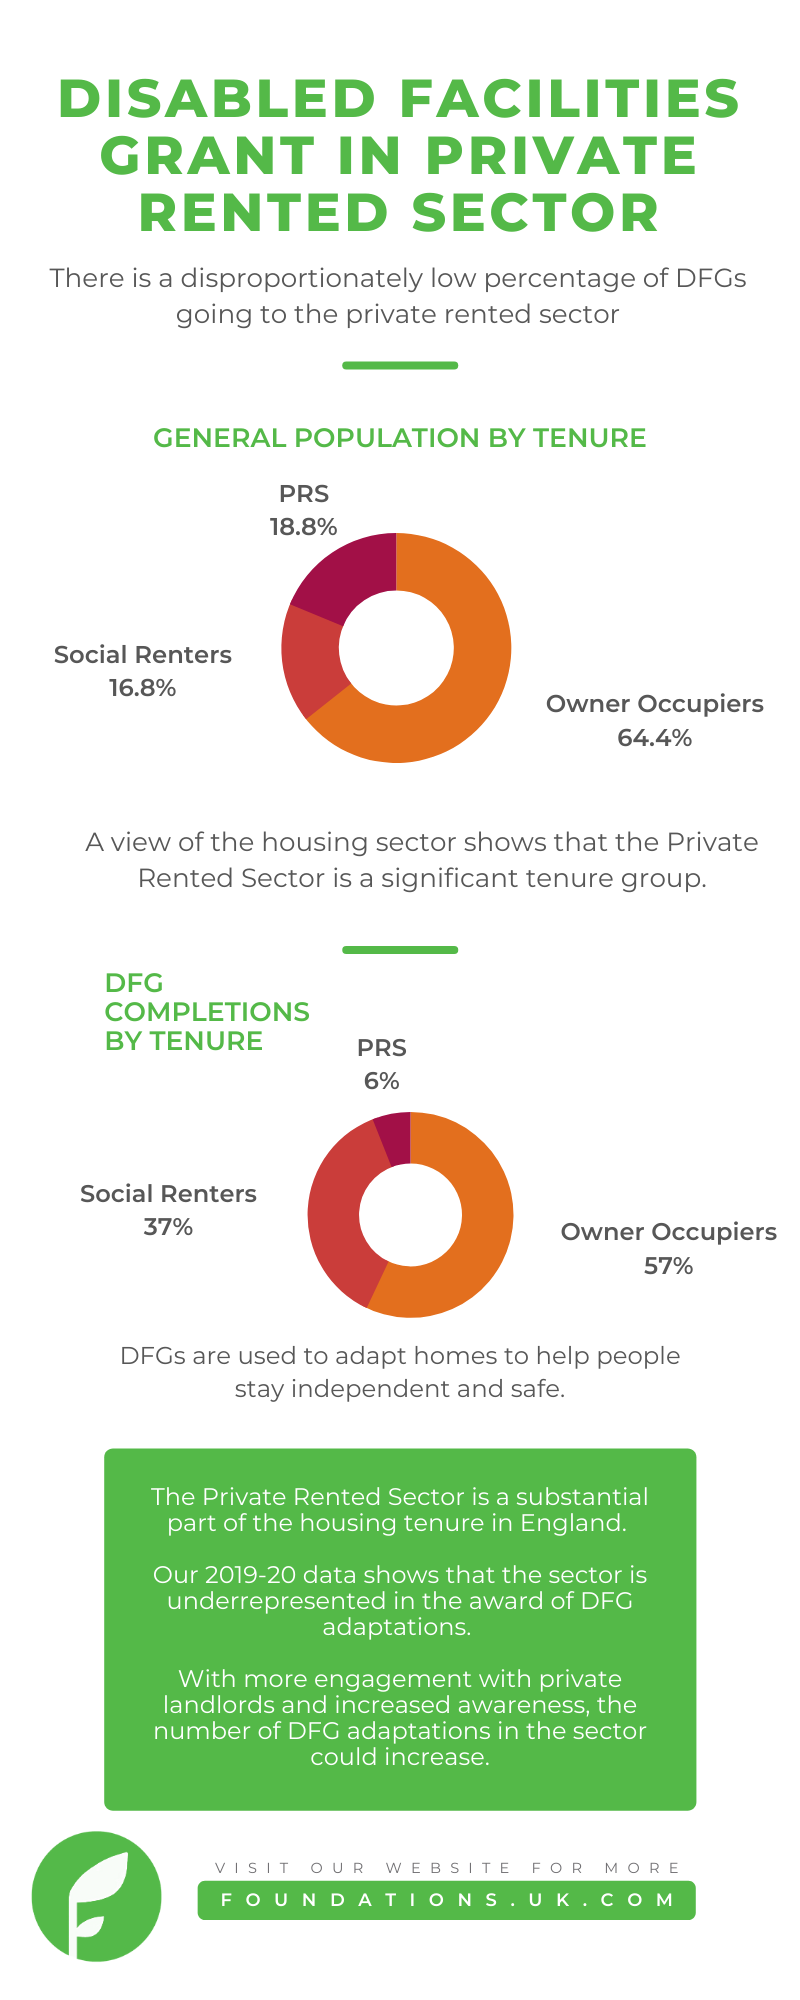 FoundationsHIA disabled facilities grant in the private rented sector statistics